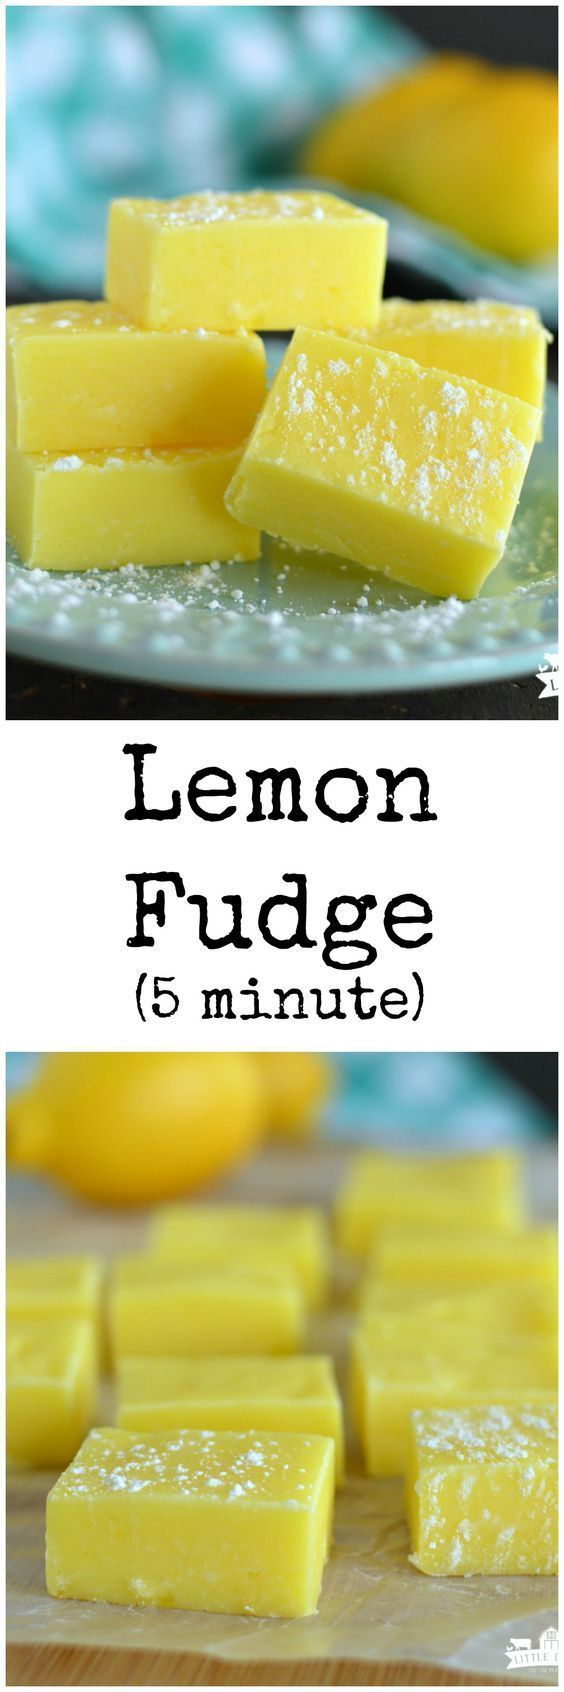 Lemon Fudge only takes 5 minutes and 4 ingredients to make! It's a gorgeous pop of color to any dessert tray!